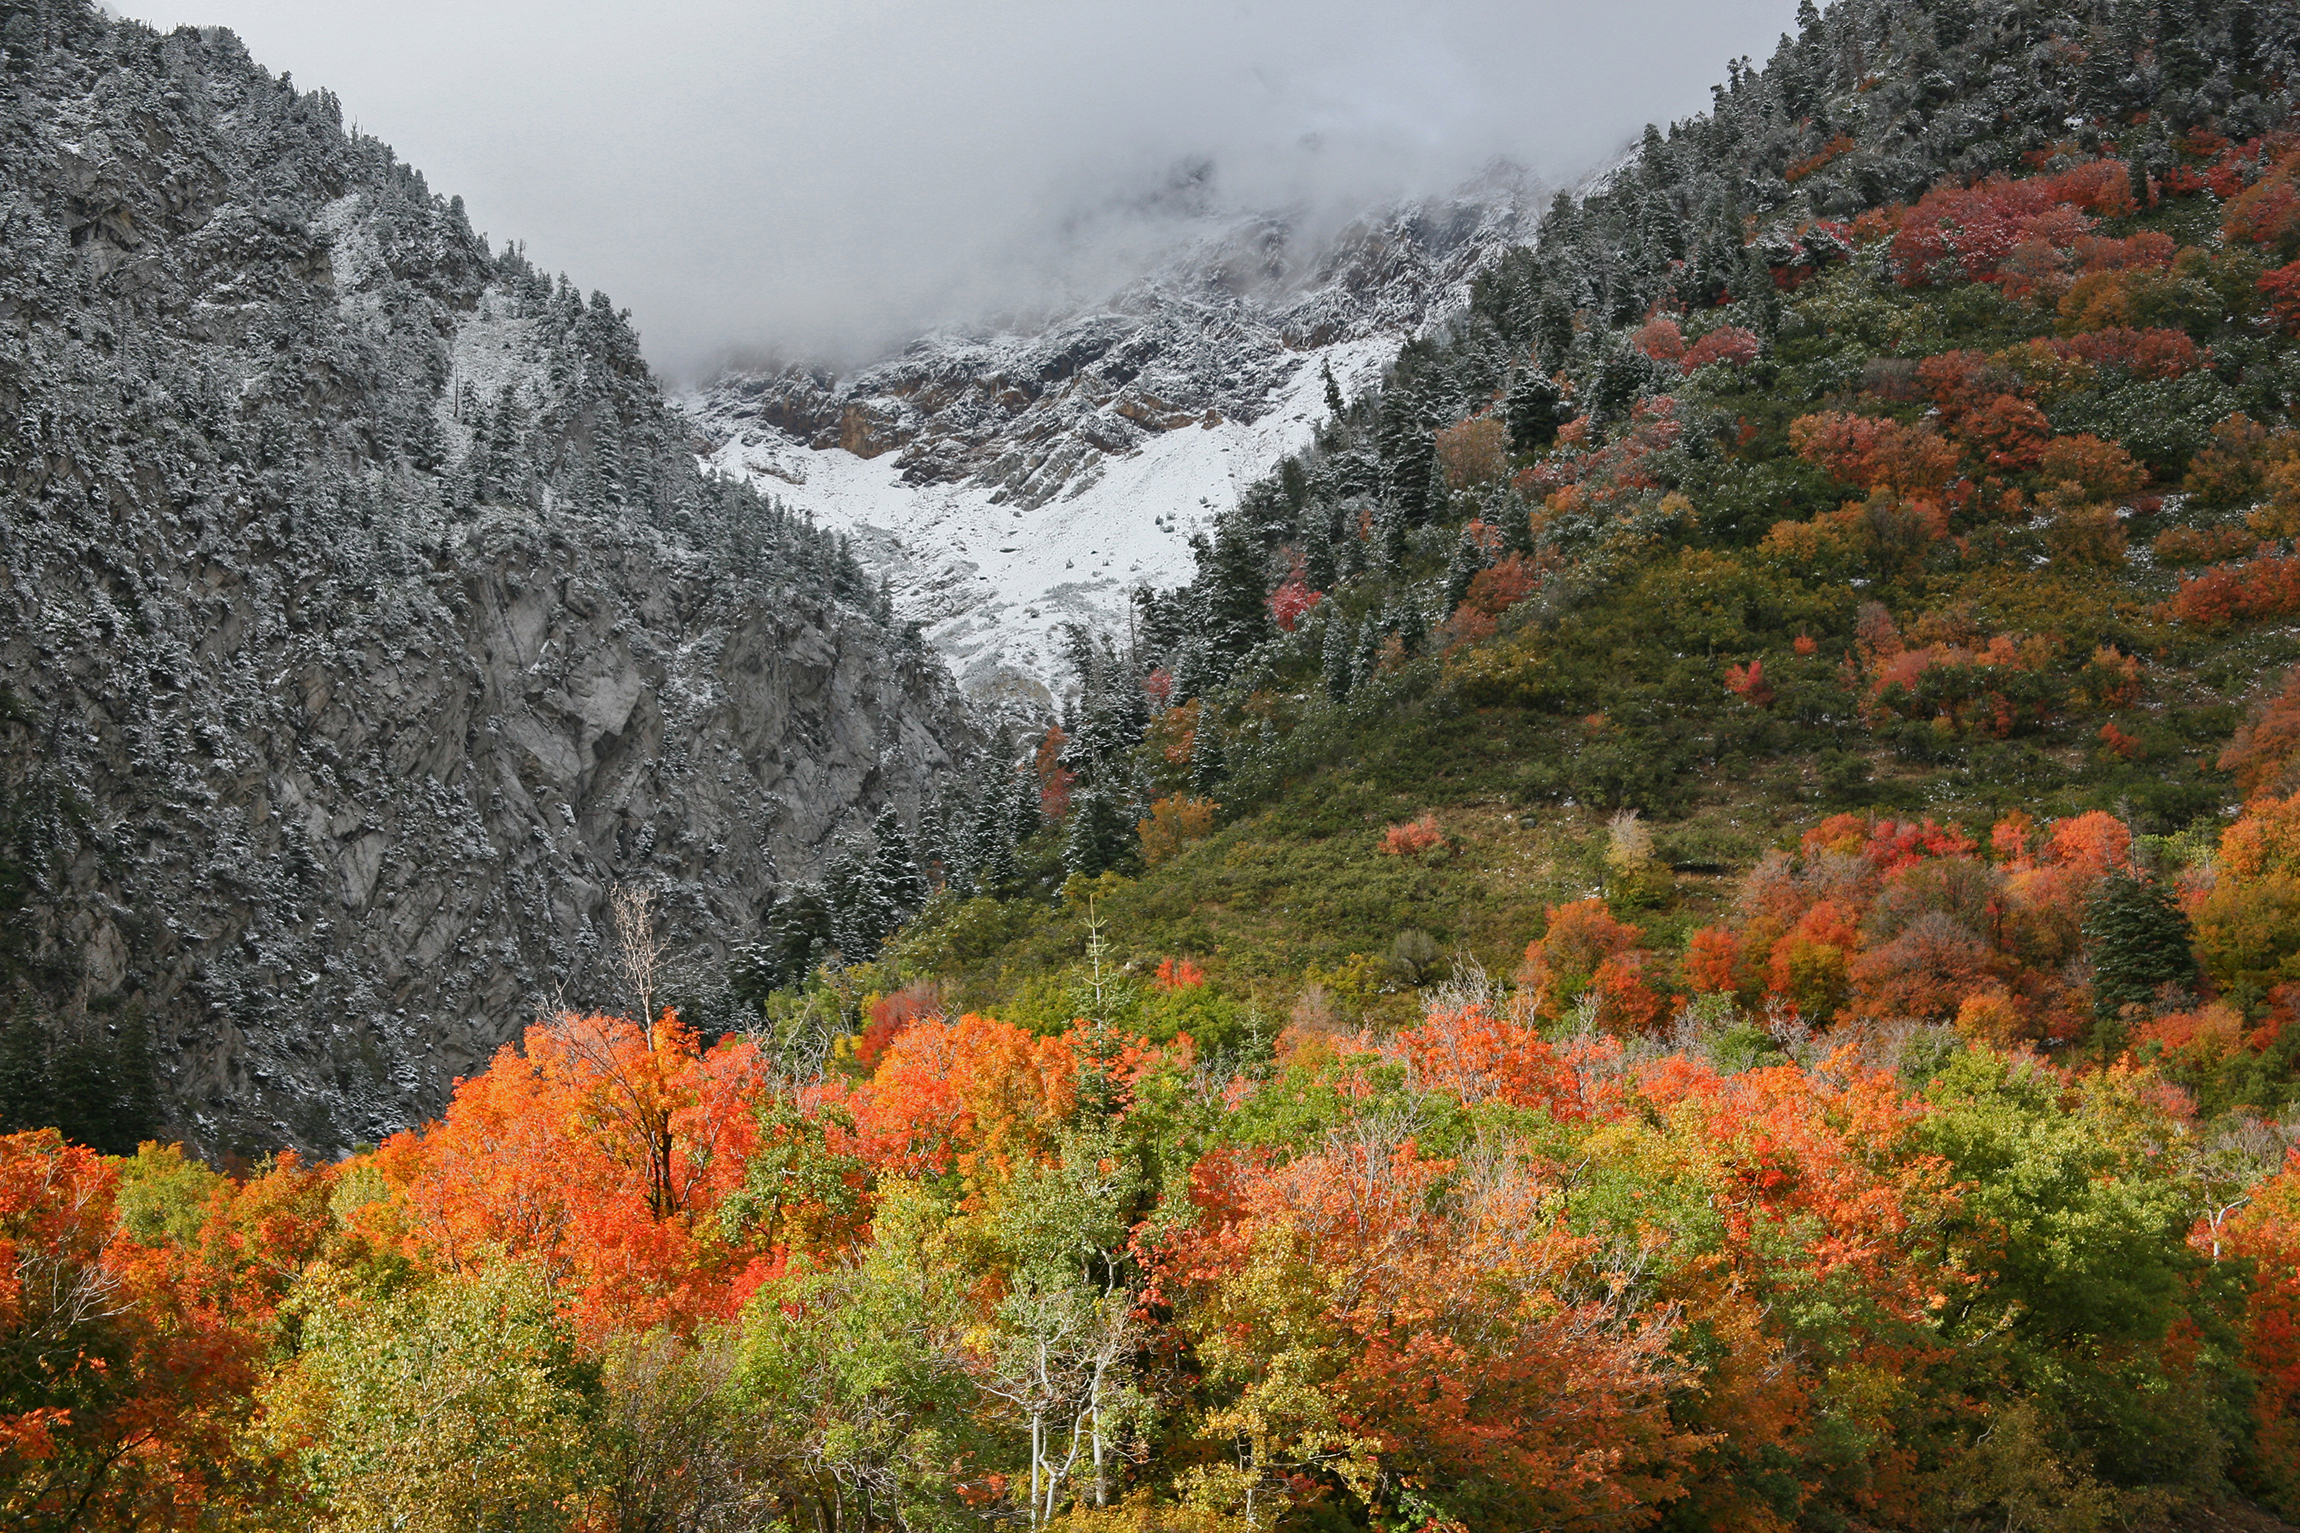 The first snow of Autumn in Little Cottonwood Canyon